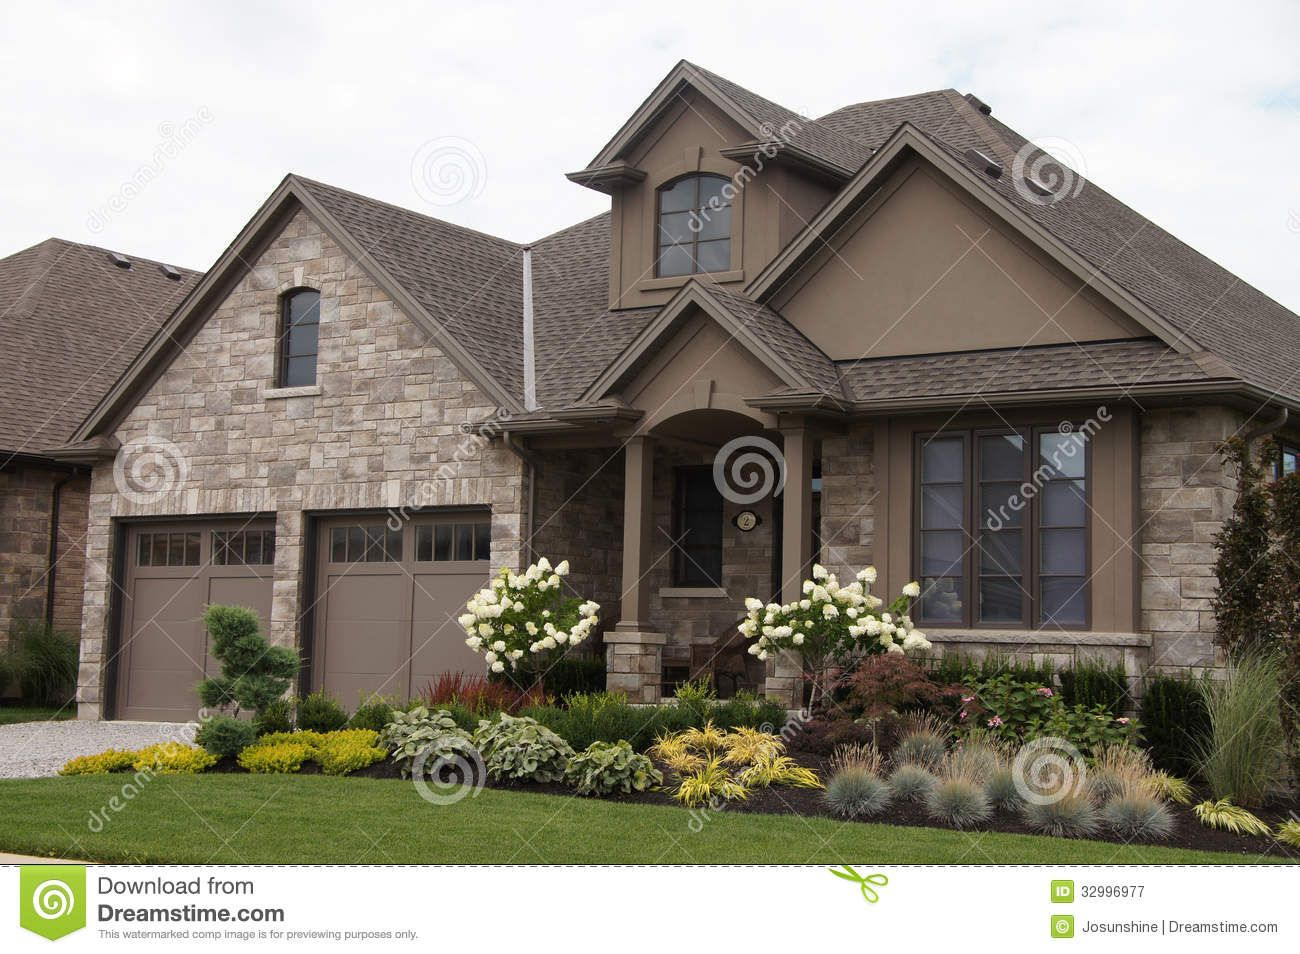 Covered front porch craftsman style home royalty free stock image - The Perfect Paint Schemes For House Exterior